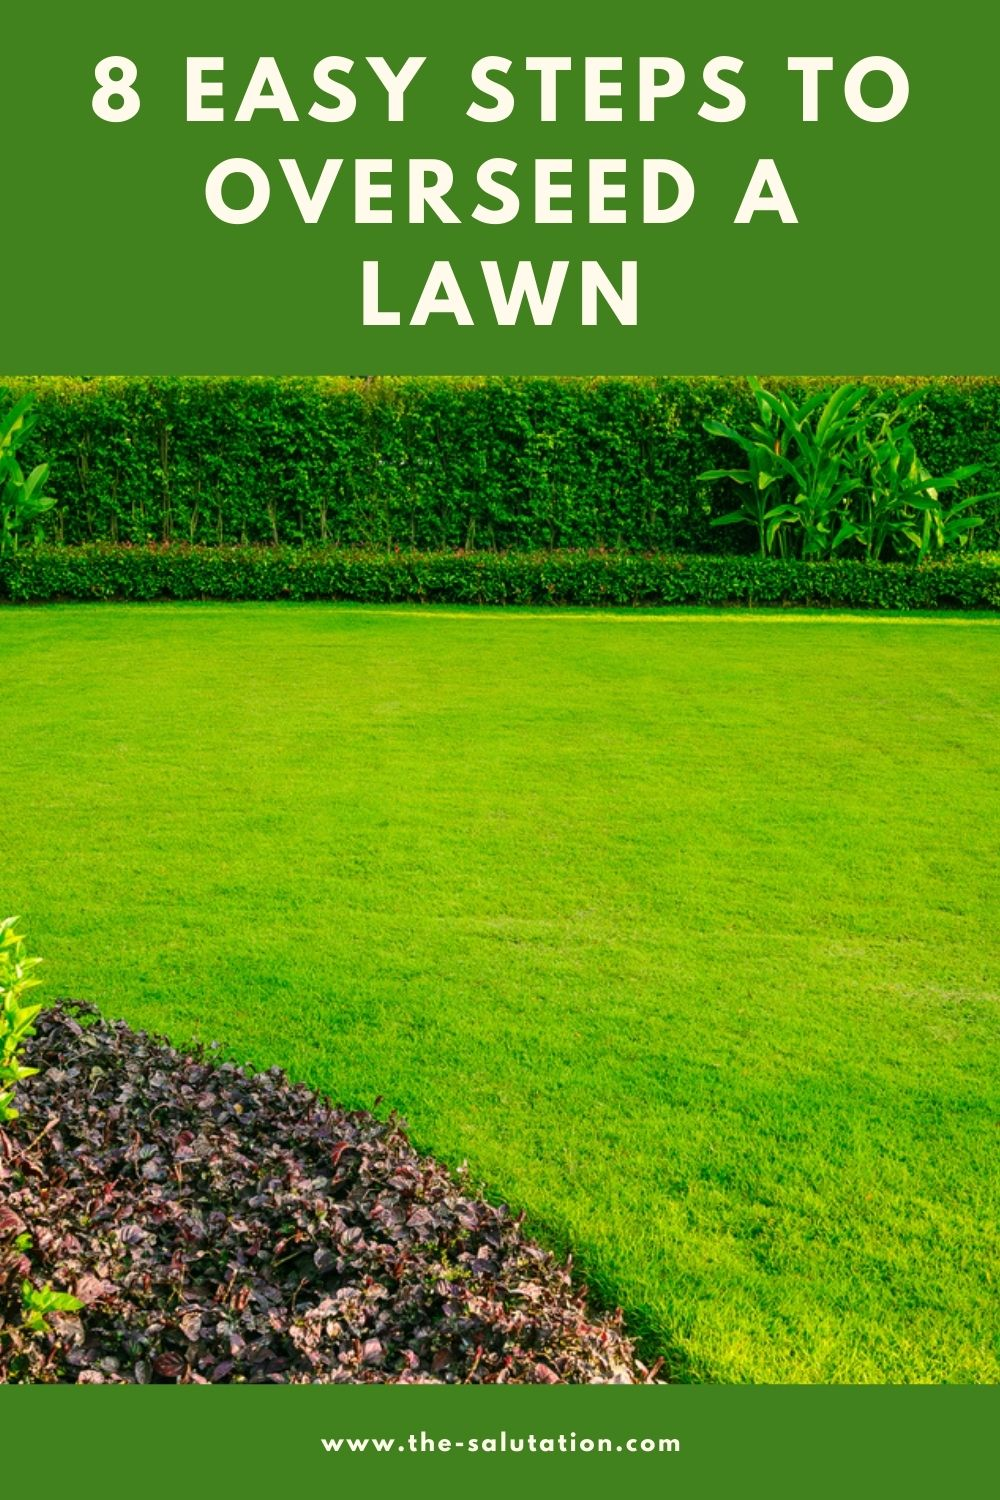 8 Easy Steps to Overseed a Lawn 2